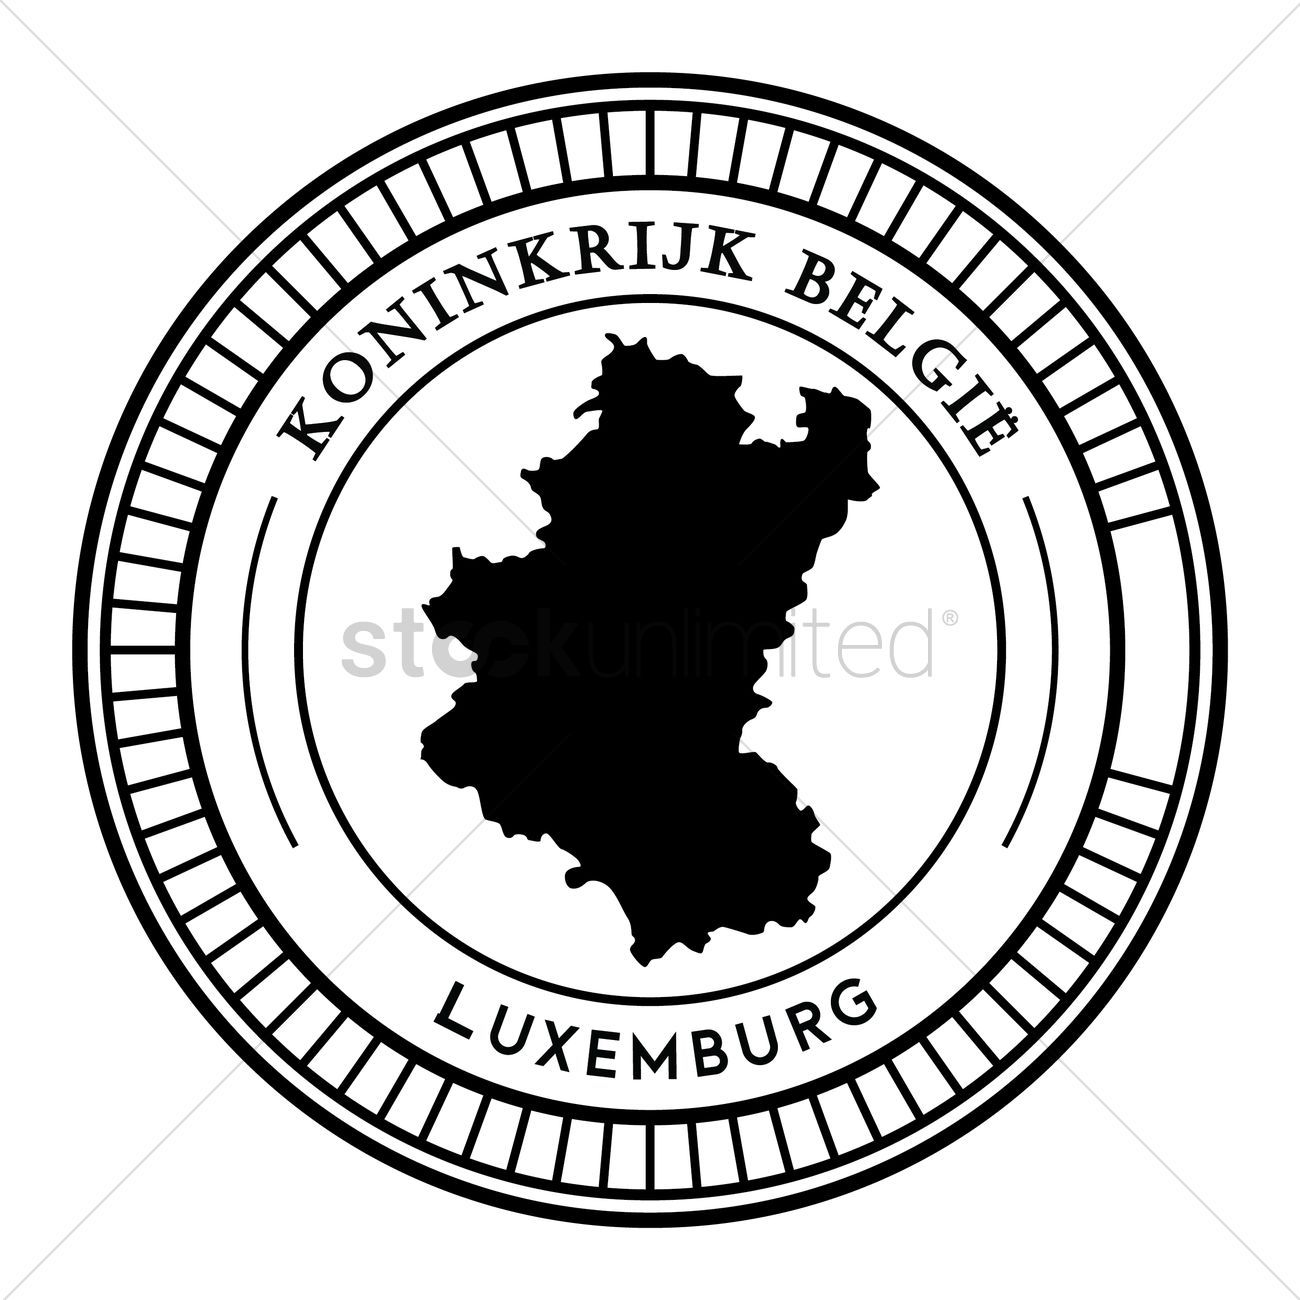 Luxemburg map sticker vectors, stock clipart , #Sponsored, #sticker, #map, #Luxemburg, #clipart, #stock #affiliate